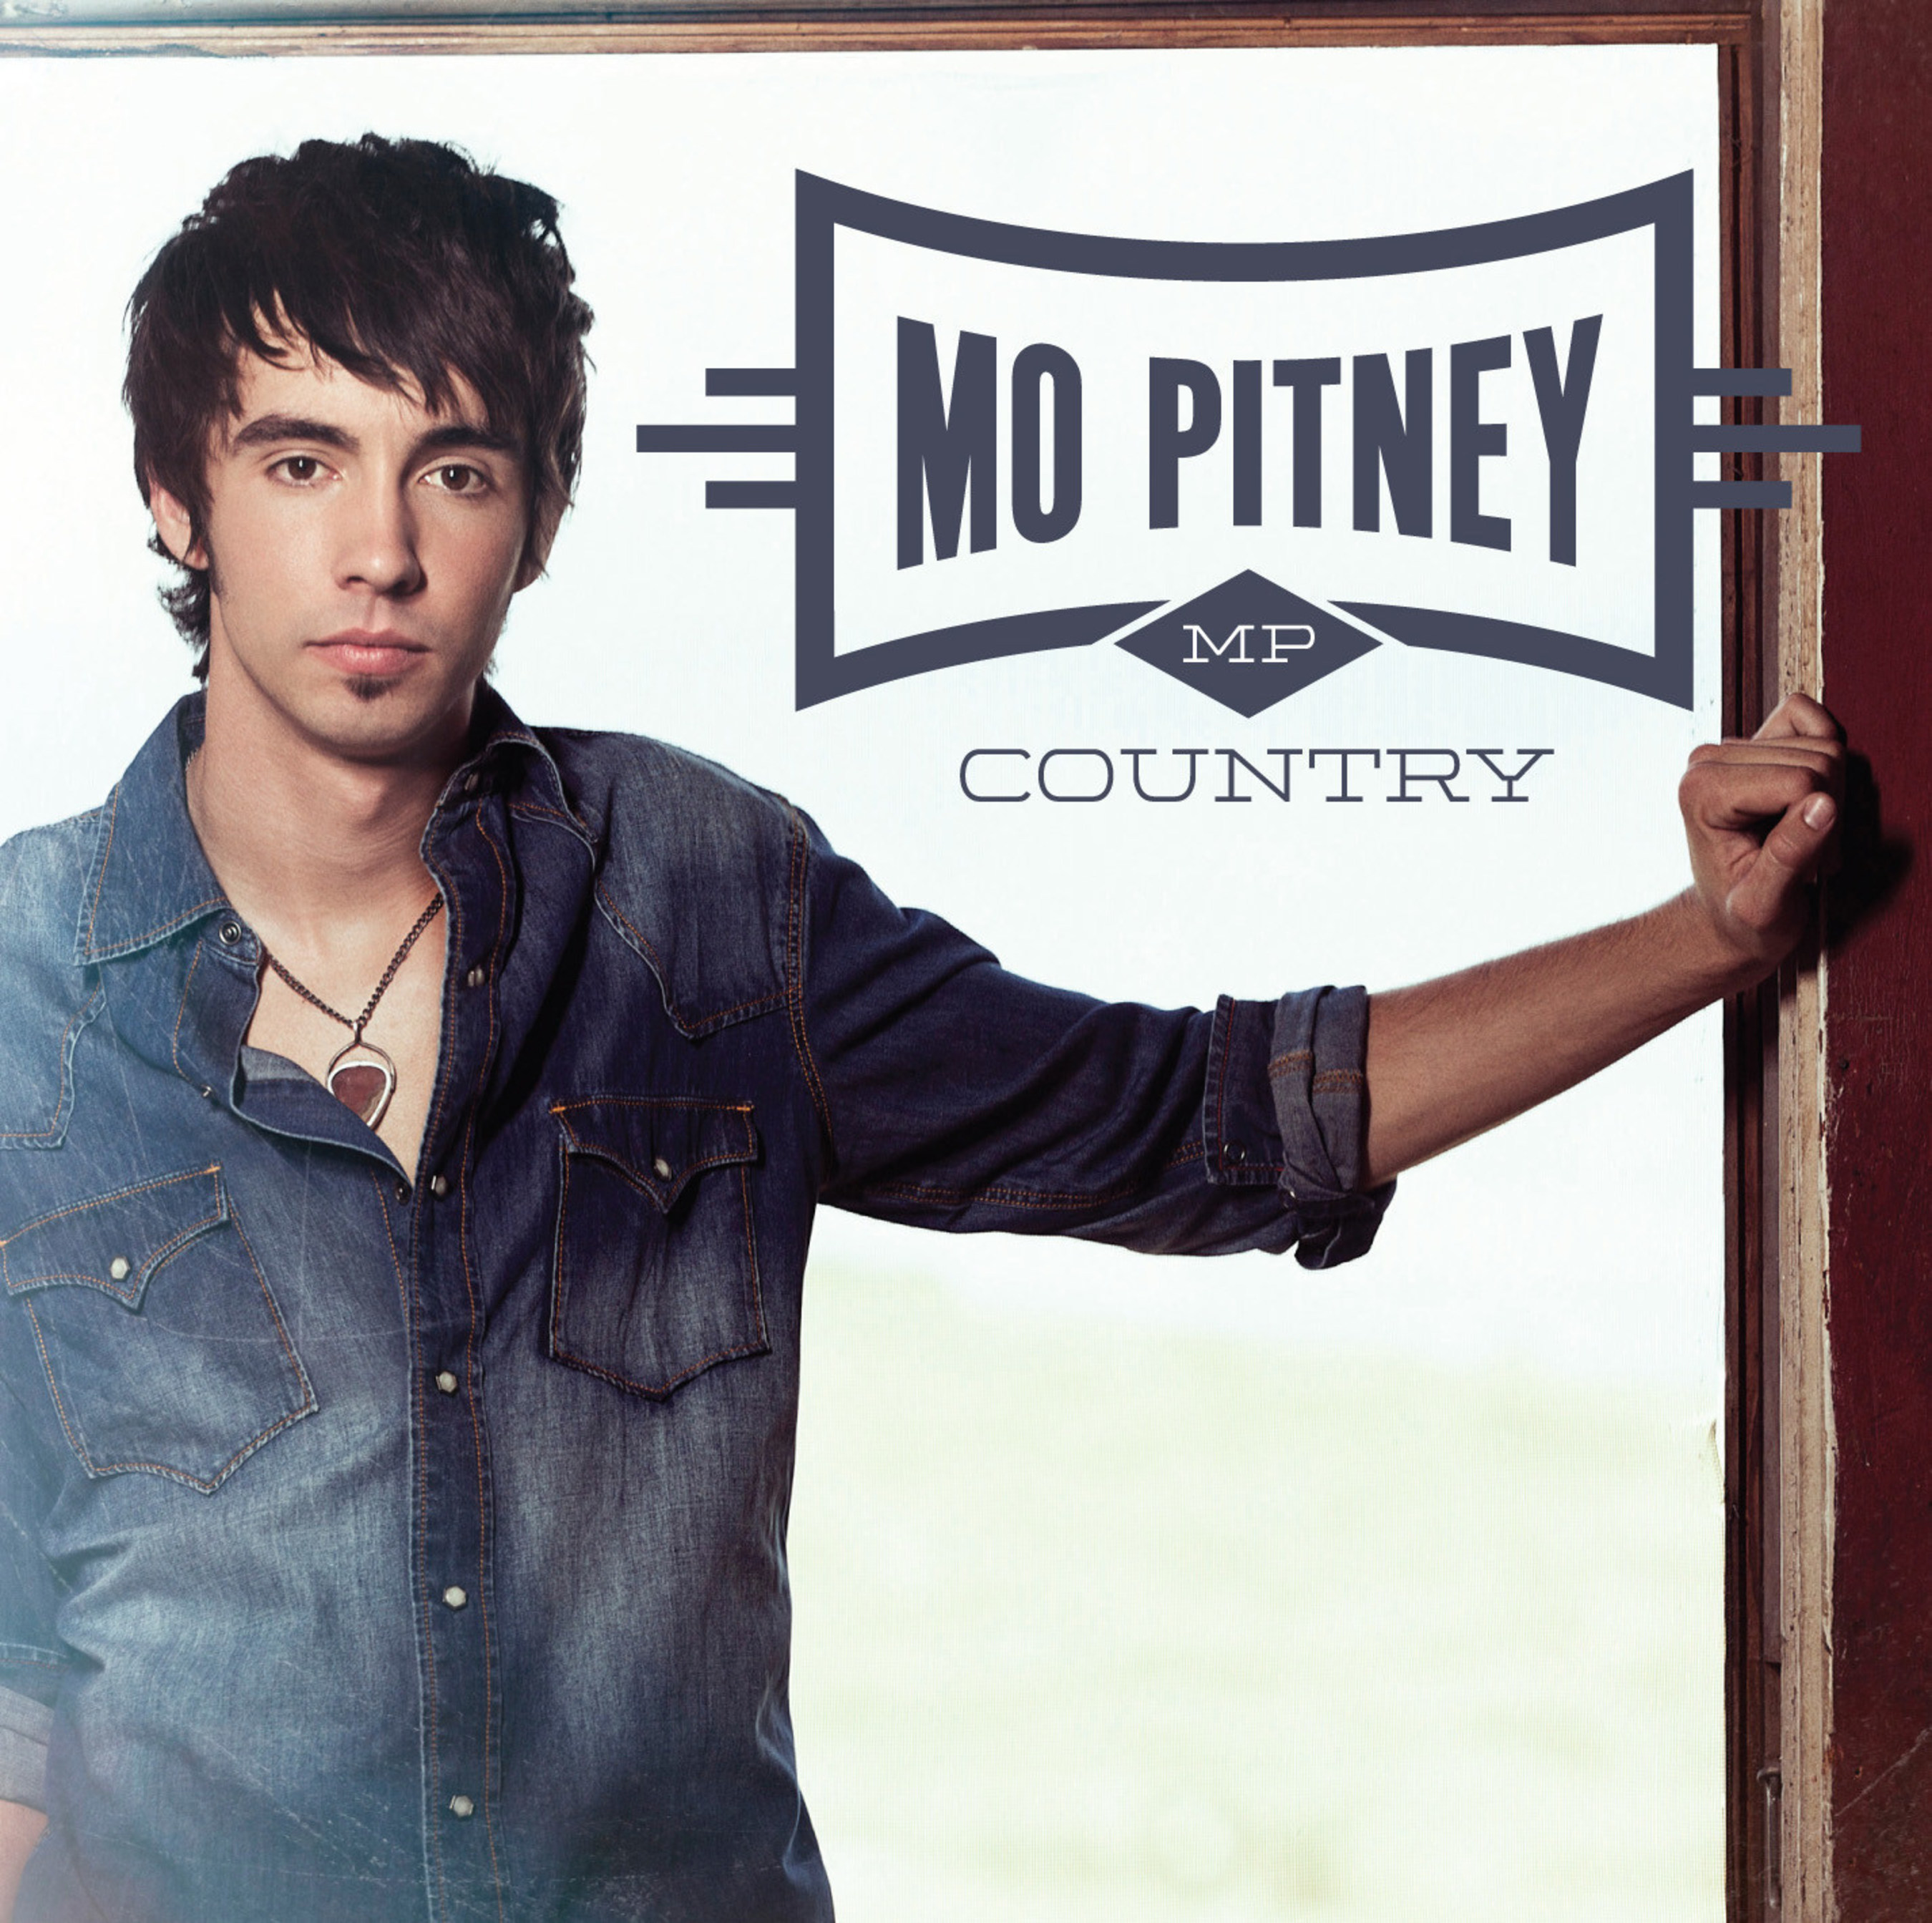 Critically Acclaimed Curb Artist Mo Pitney Partners with CMT and iHeartMedia For the Exclusive